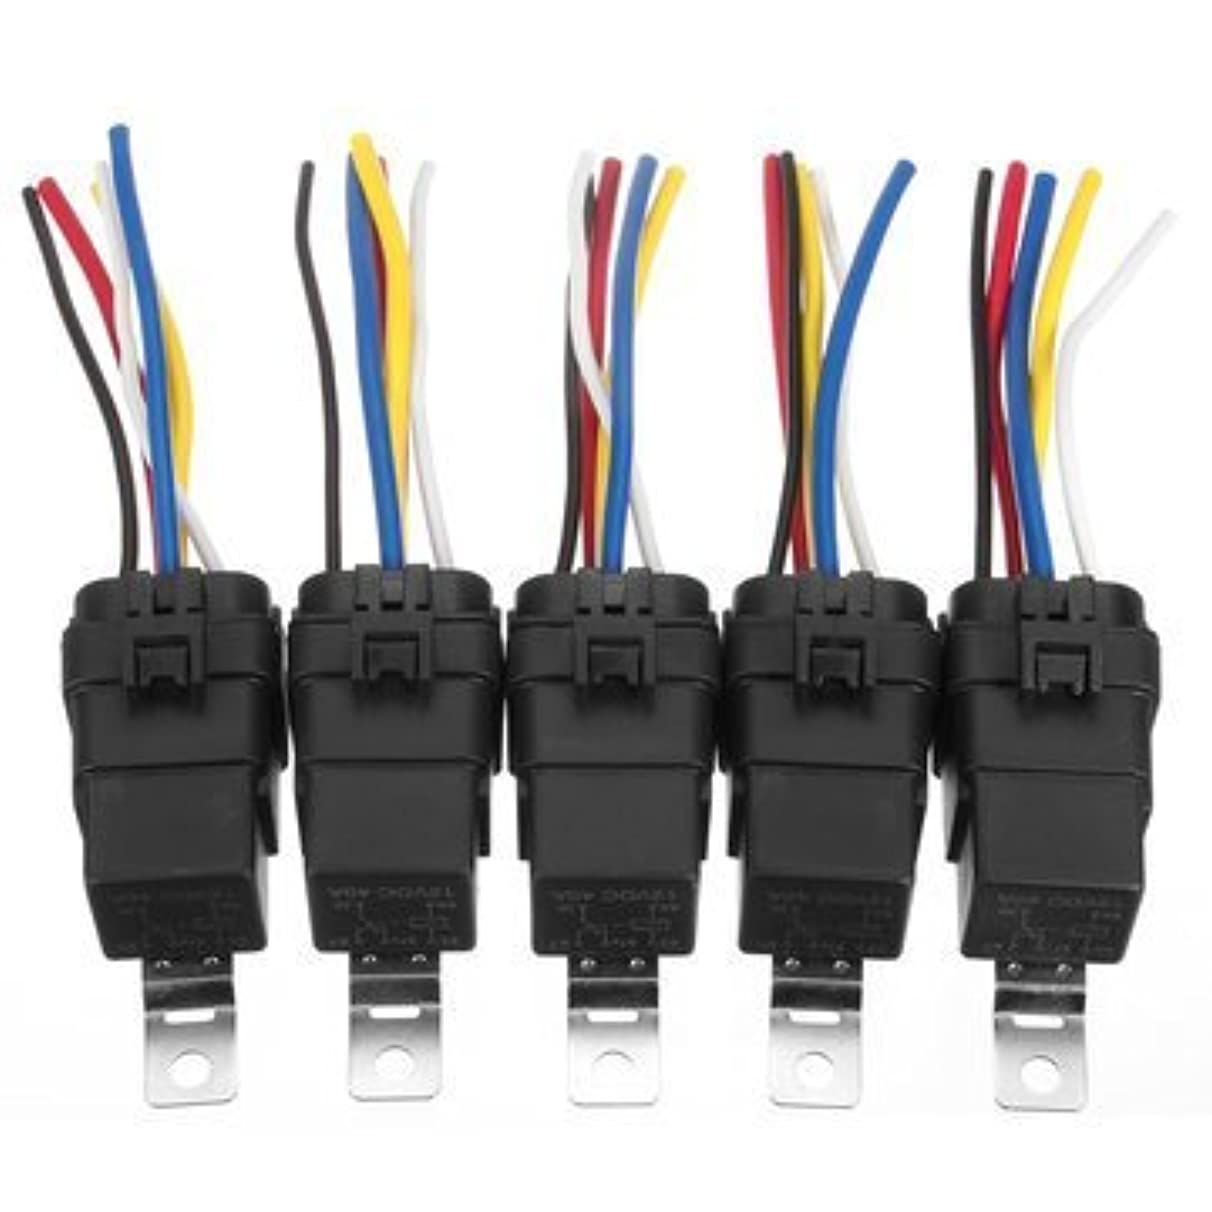 Shift Rein Cable - Automotive Relay Switch Harness 12awg Wire Waterproof 30amp 12vdc - Swap Draw Electrify Change Rule Telegram Ambidextrou Flip Telegraph Transposition - 1PCs